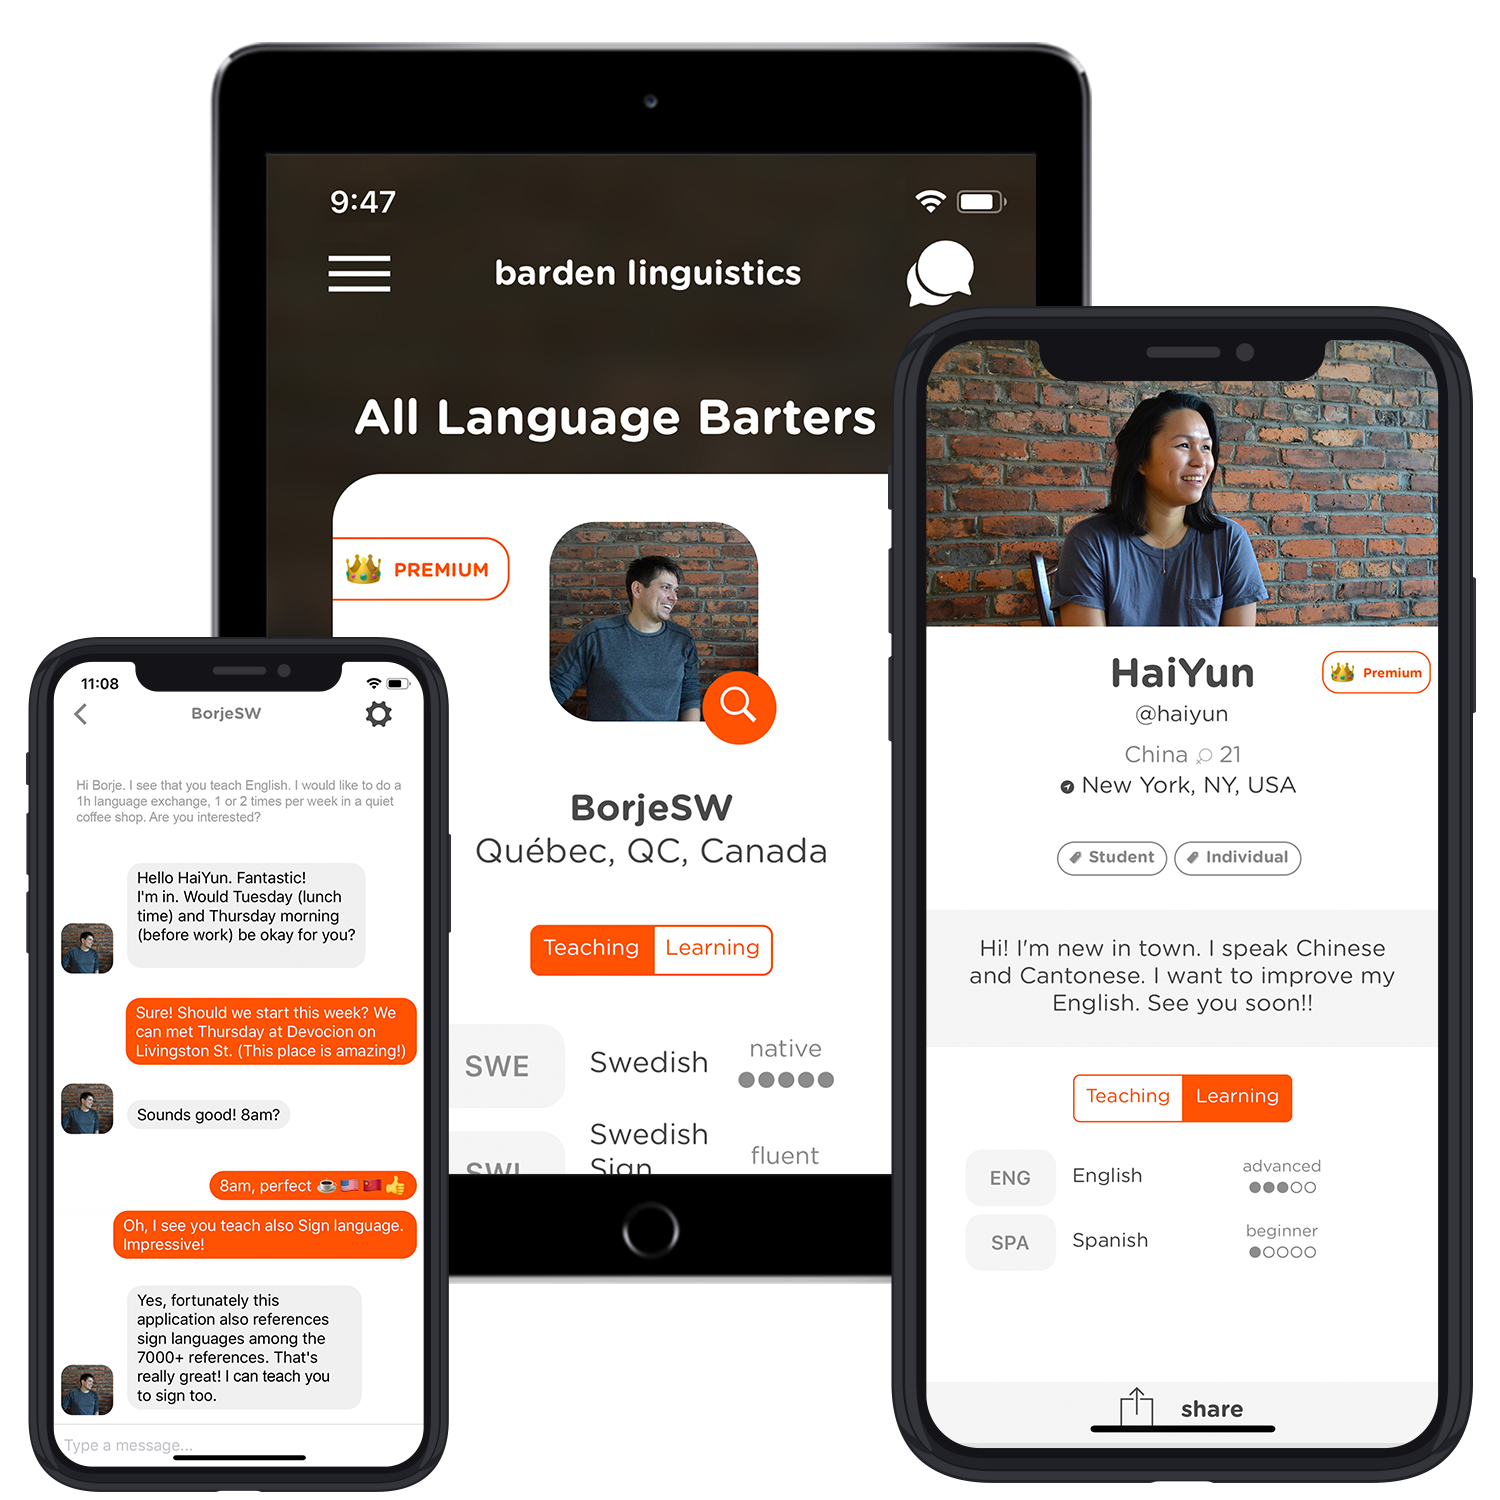 barden-language-exchange-app-inapp-design